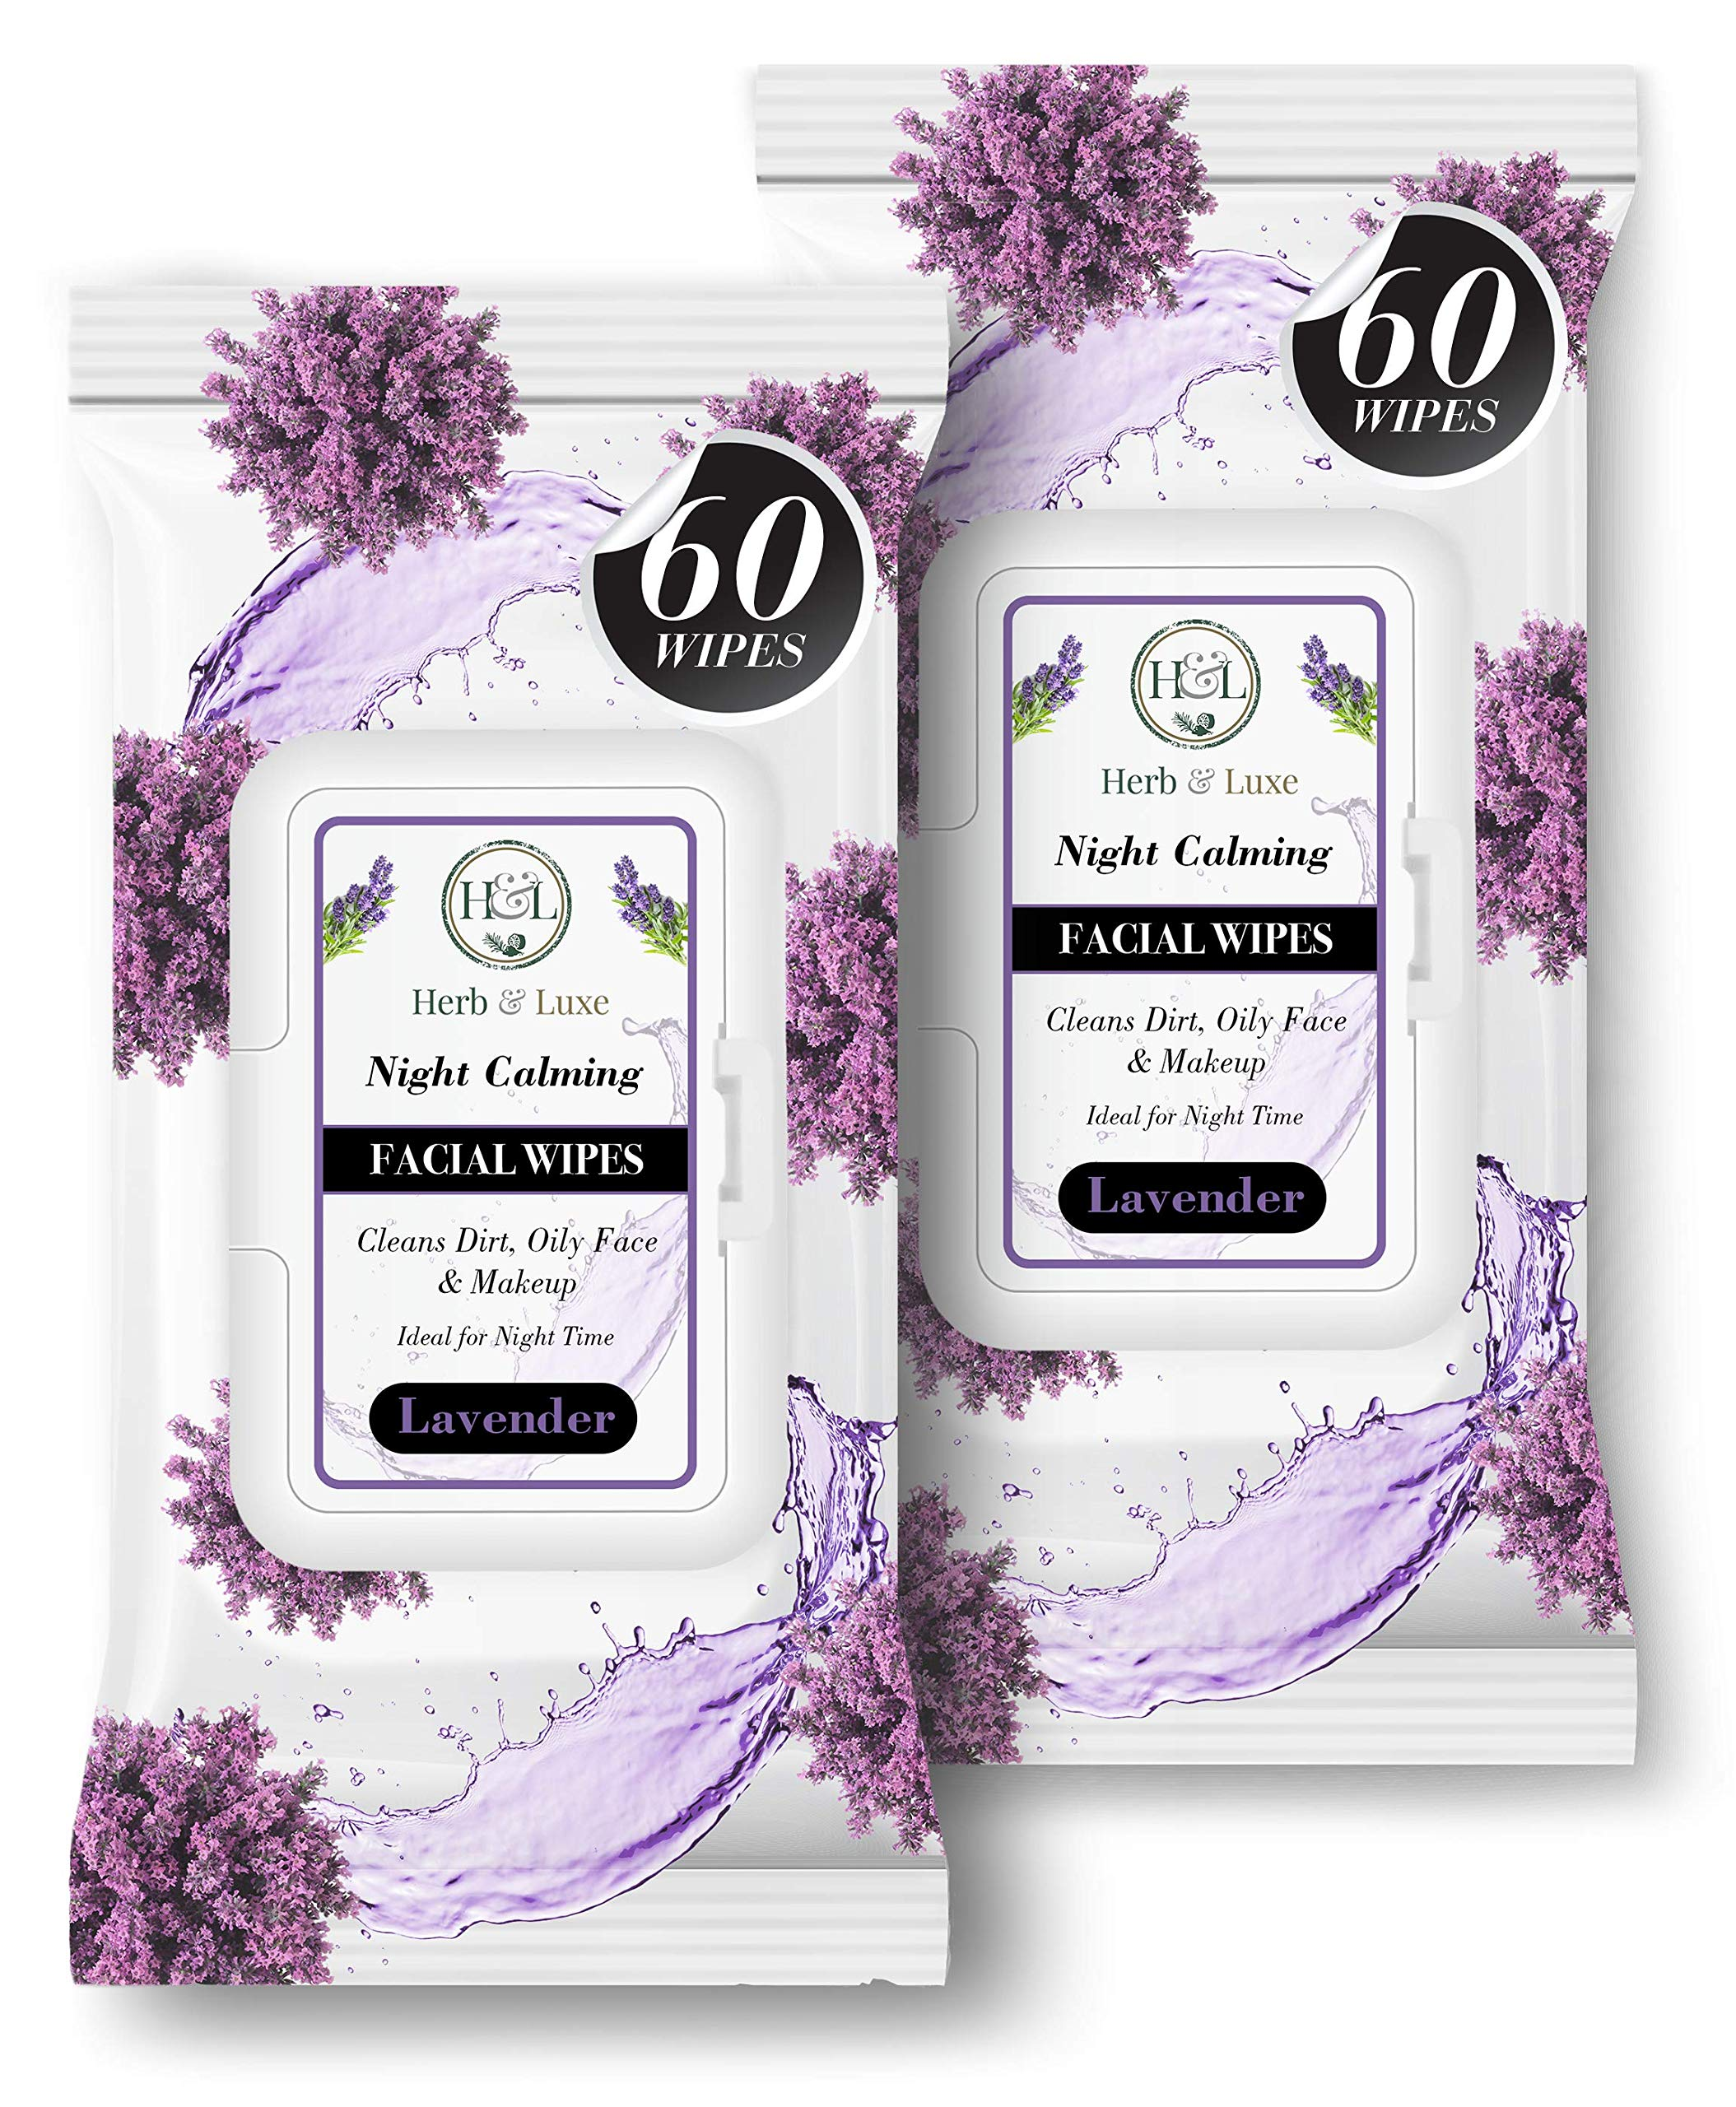 Herb & Luxe Face Wipes, Flip-Top Makeup Remover Facial Cleansing Wipes with Aloe Vera for Sensitive, Oily, dry Skin, Face/Hands/Body, Women/Men, 60 Count, Lavender (Pack of 2 = 120 Wipes)